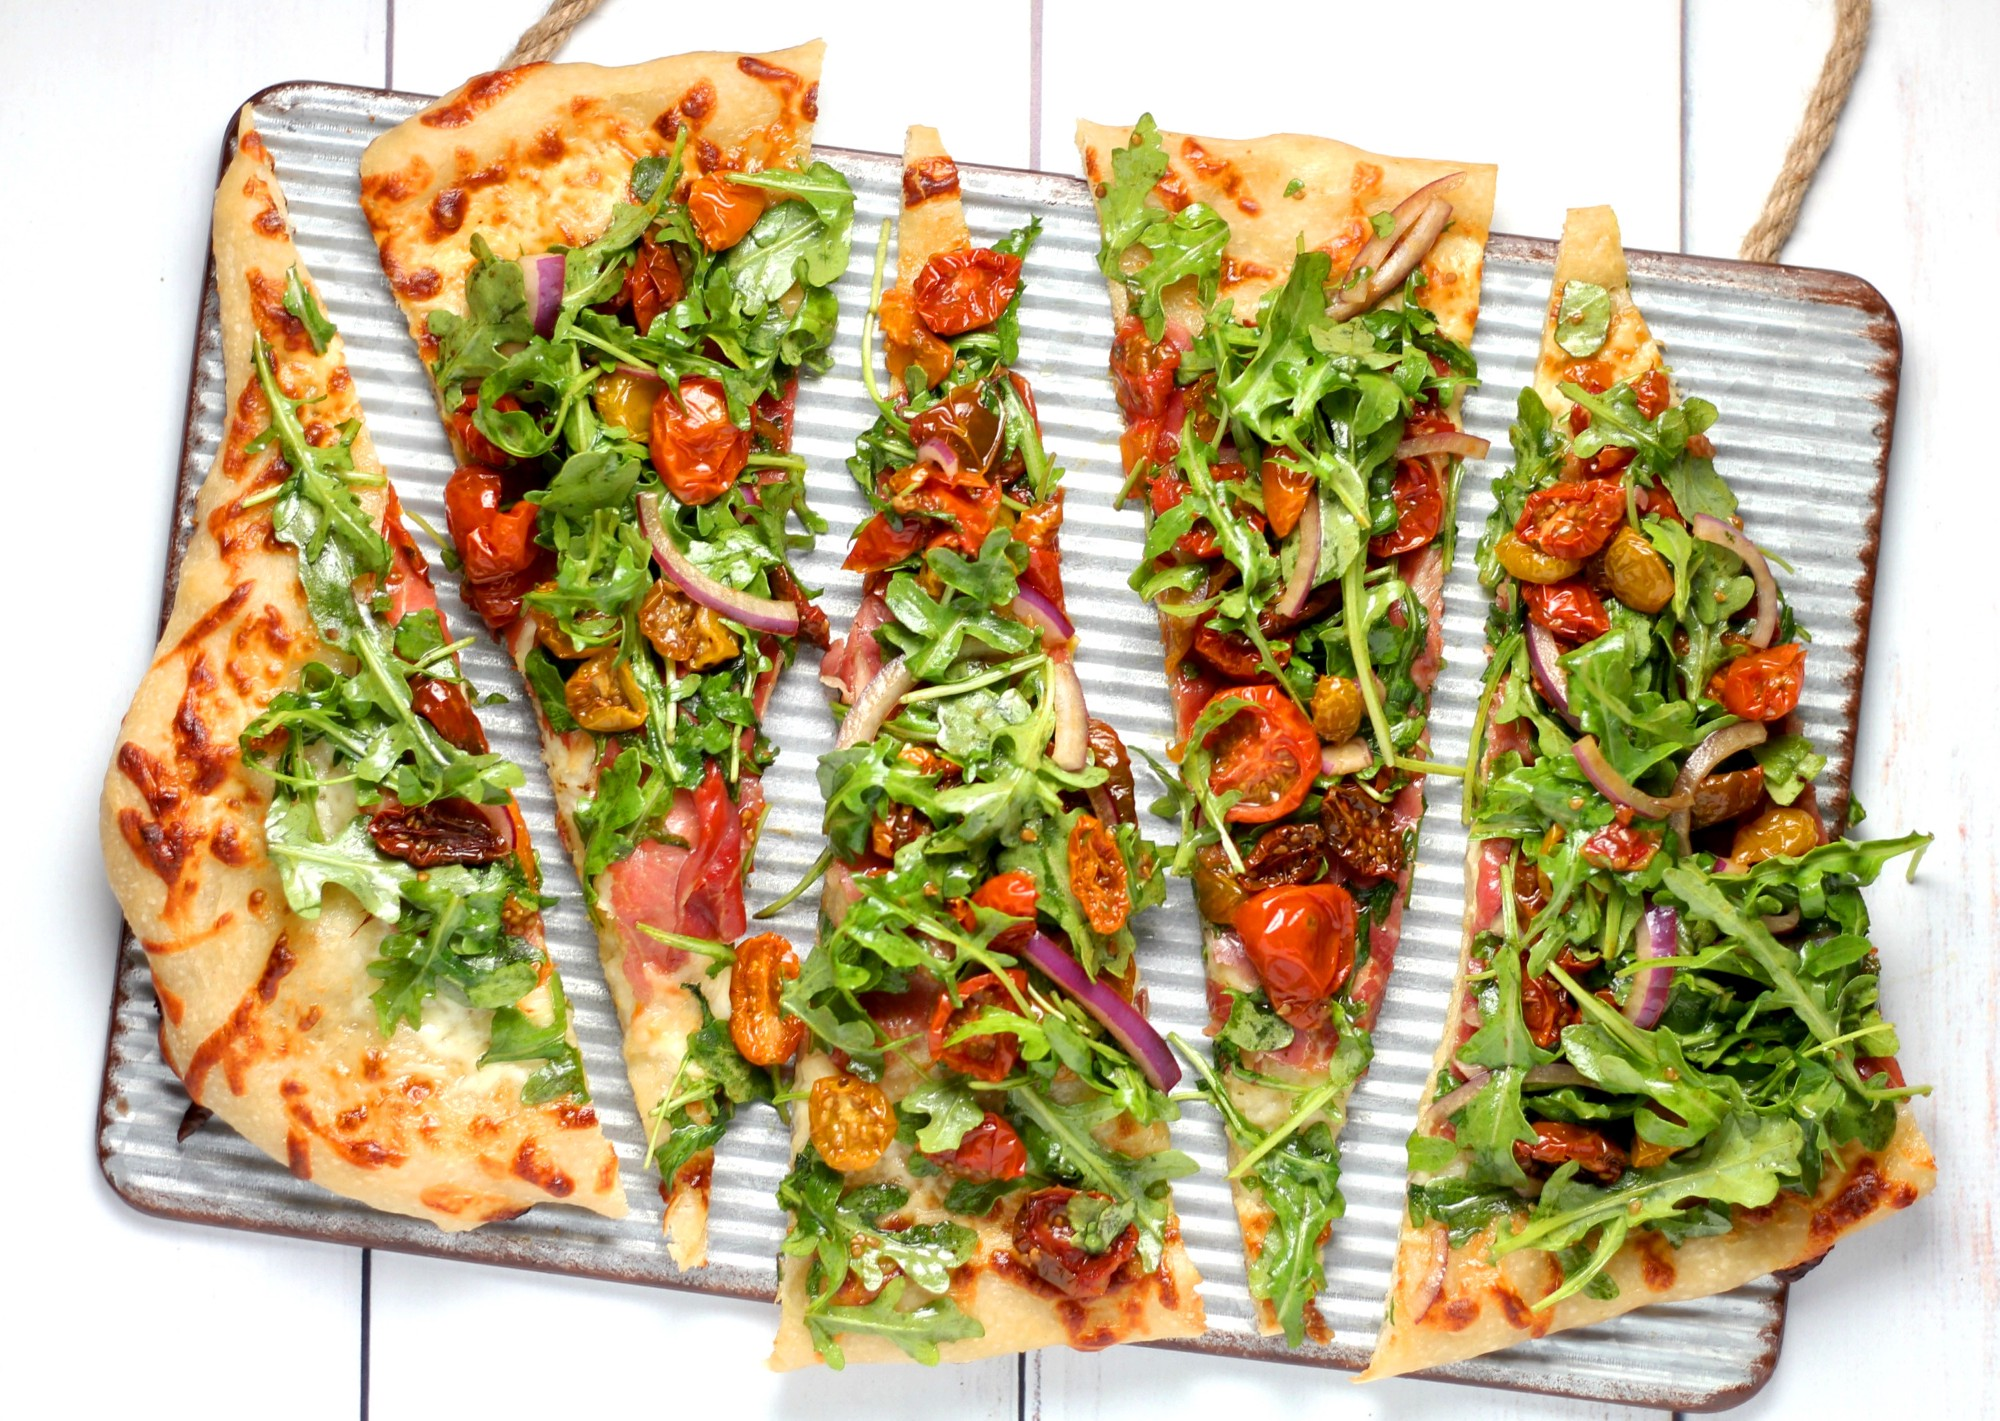 Slices of homemade pizza topped with tomatoes, vegetables, and leafy greens.